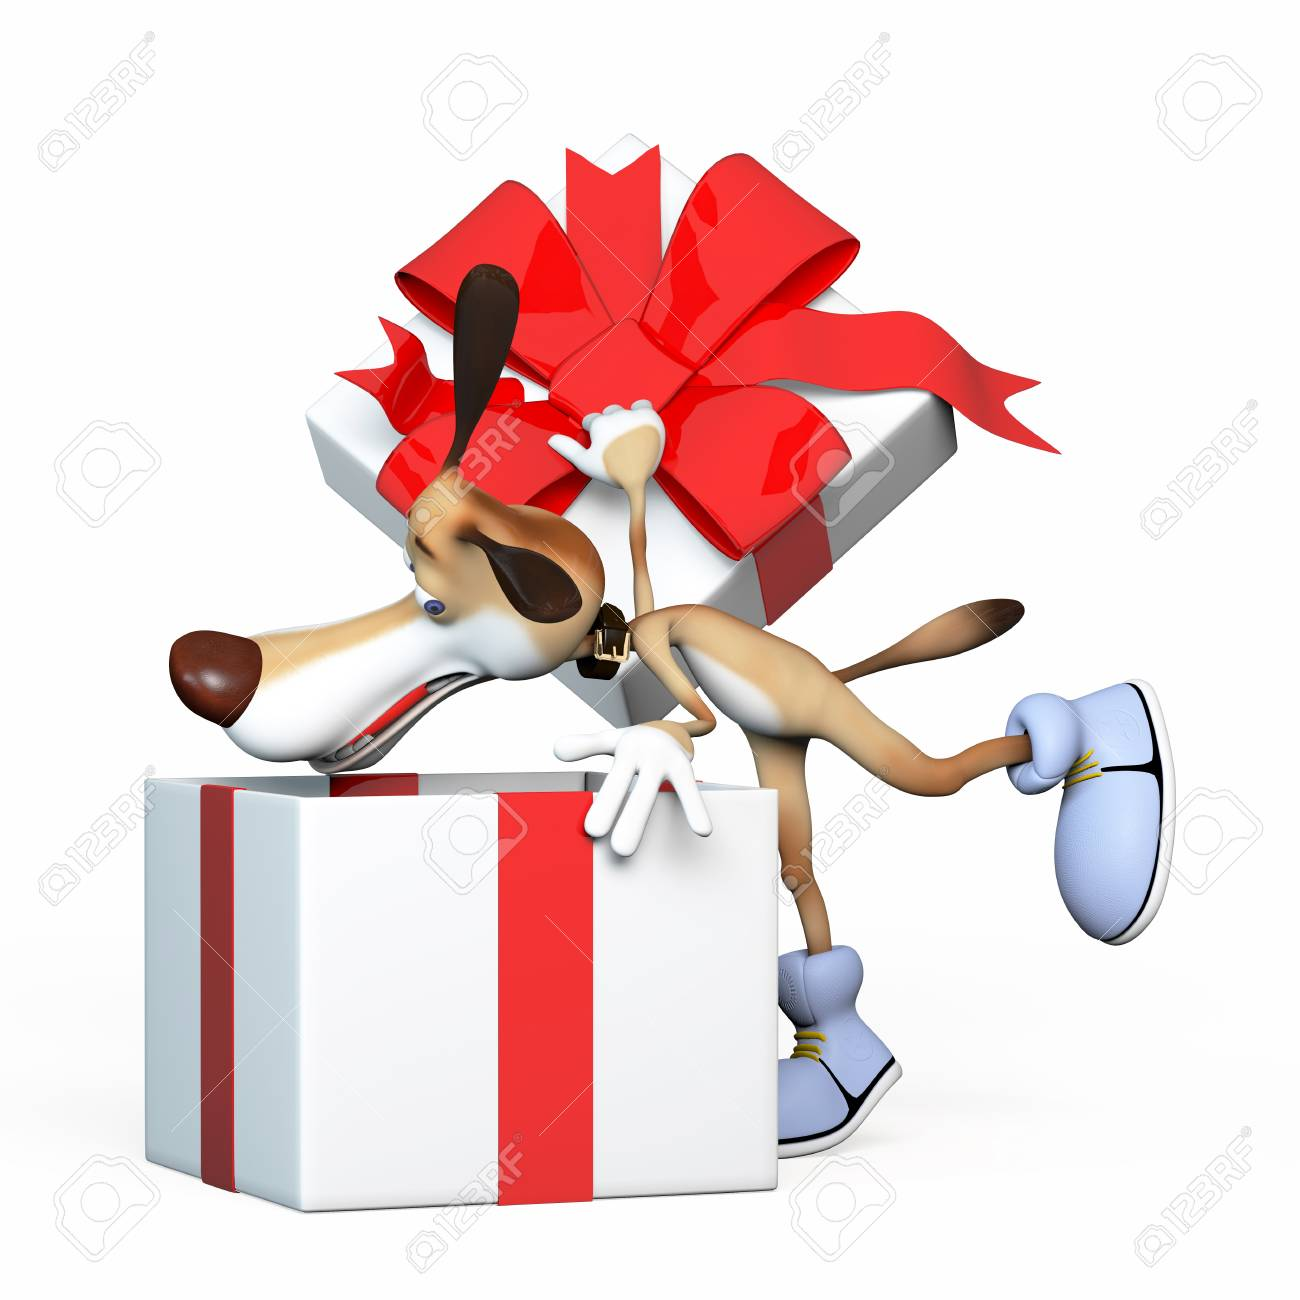 The dog looks for gifts. Put gifts please. Stock Photo - 19195257